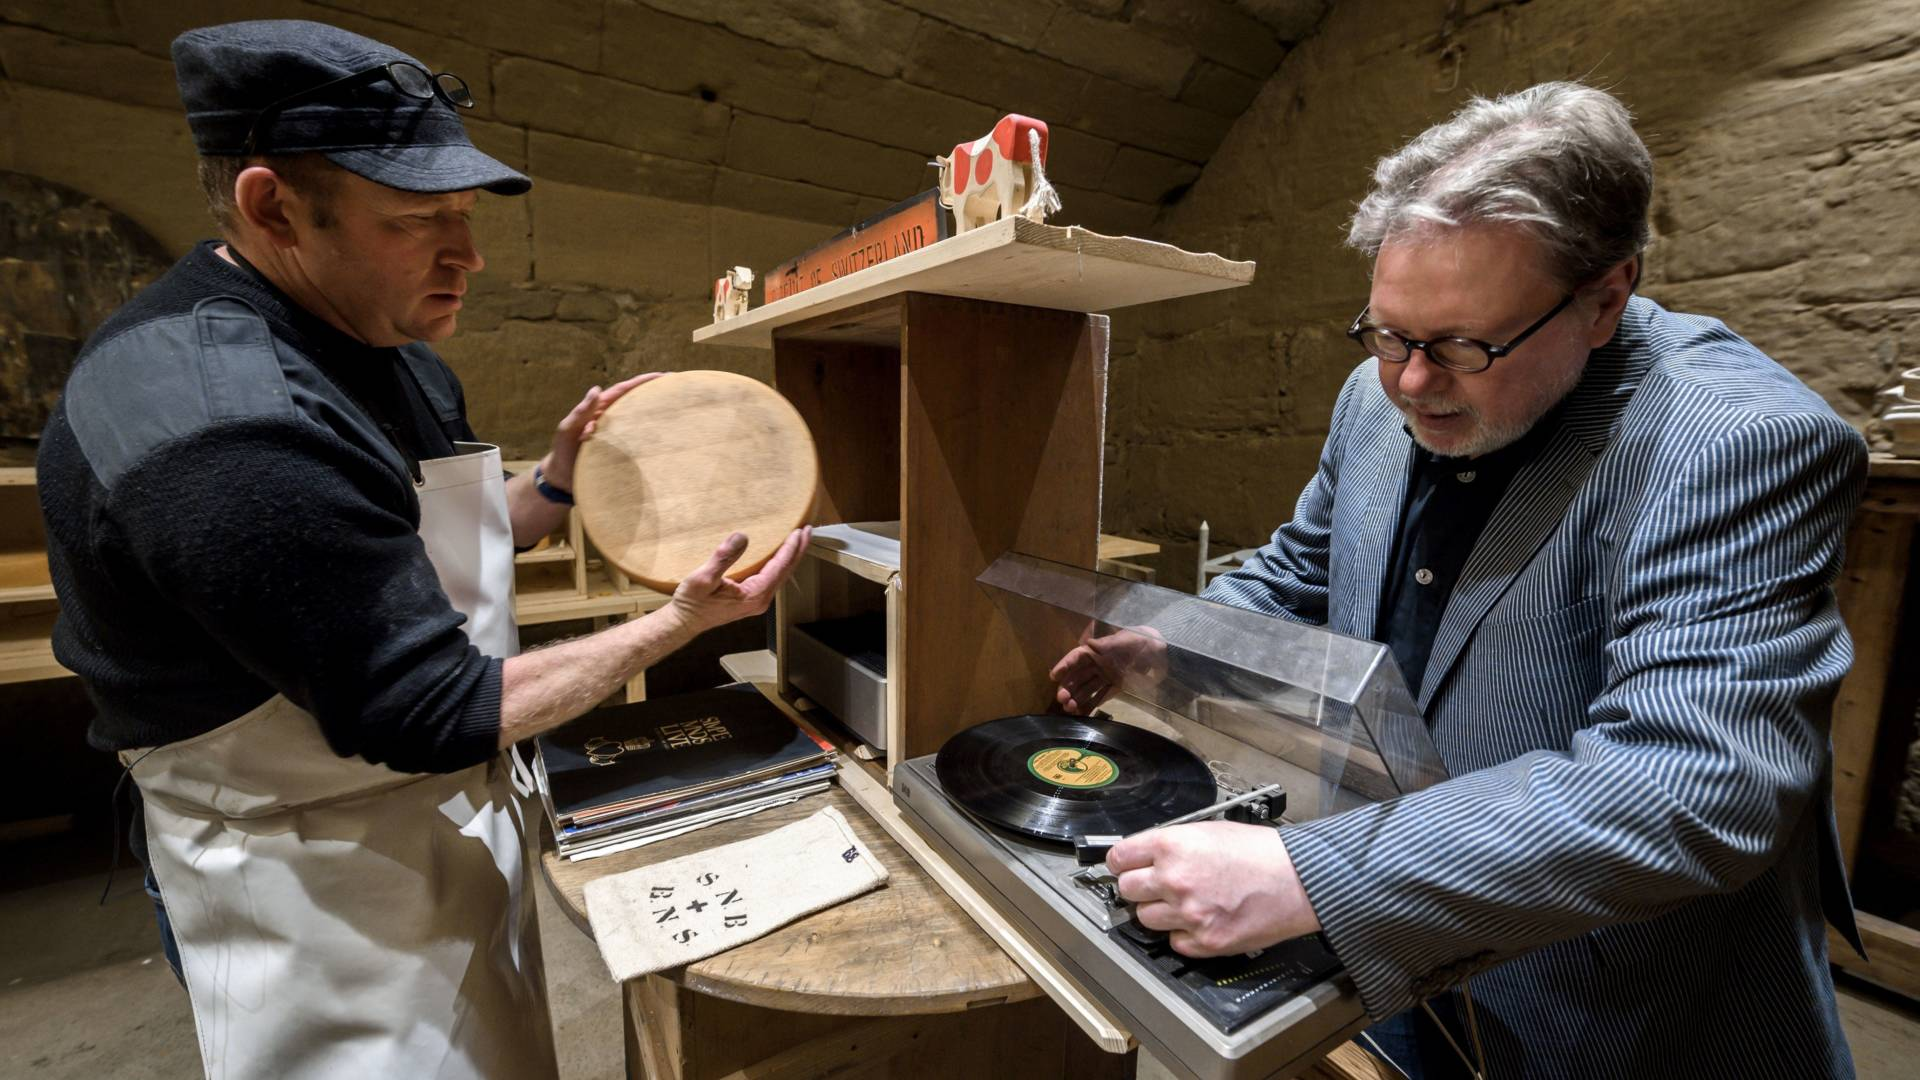 Swiss cheesemaker Beat Wampfler, left, and director of the Music Department at University of the Arts in Bern, Michael Harenberg pose with a vinyl record and a wheel of Emmental.